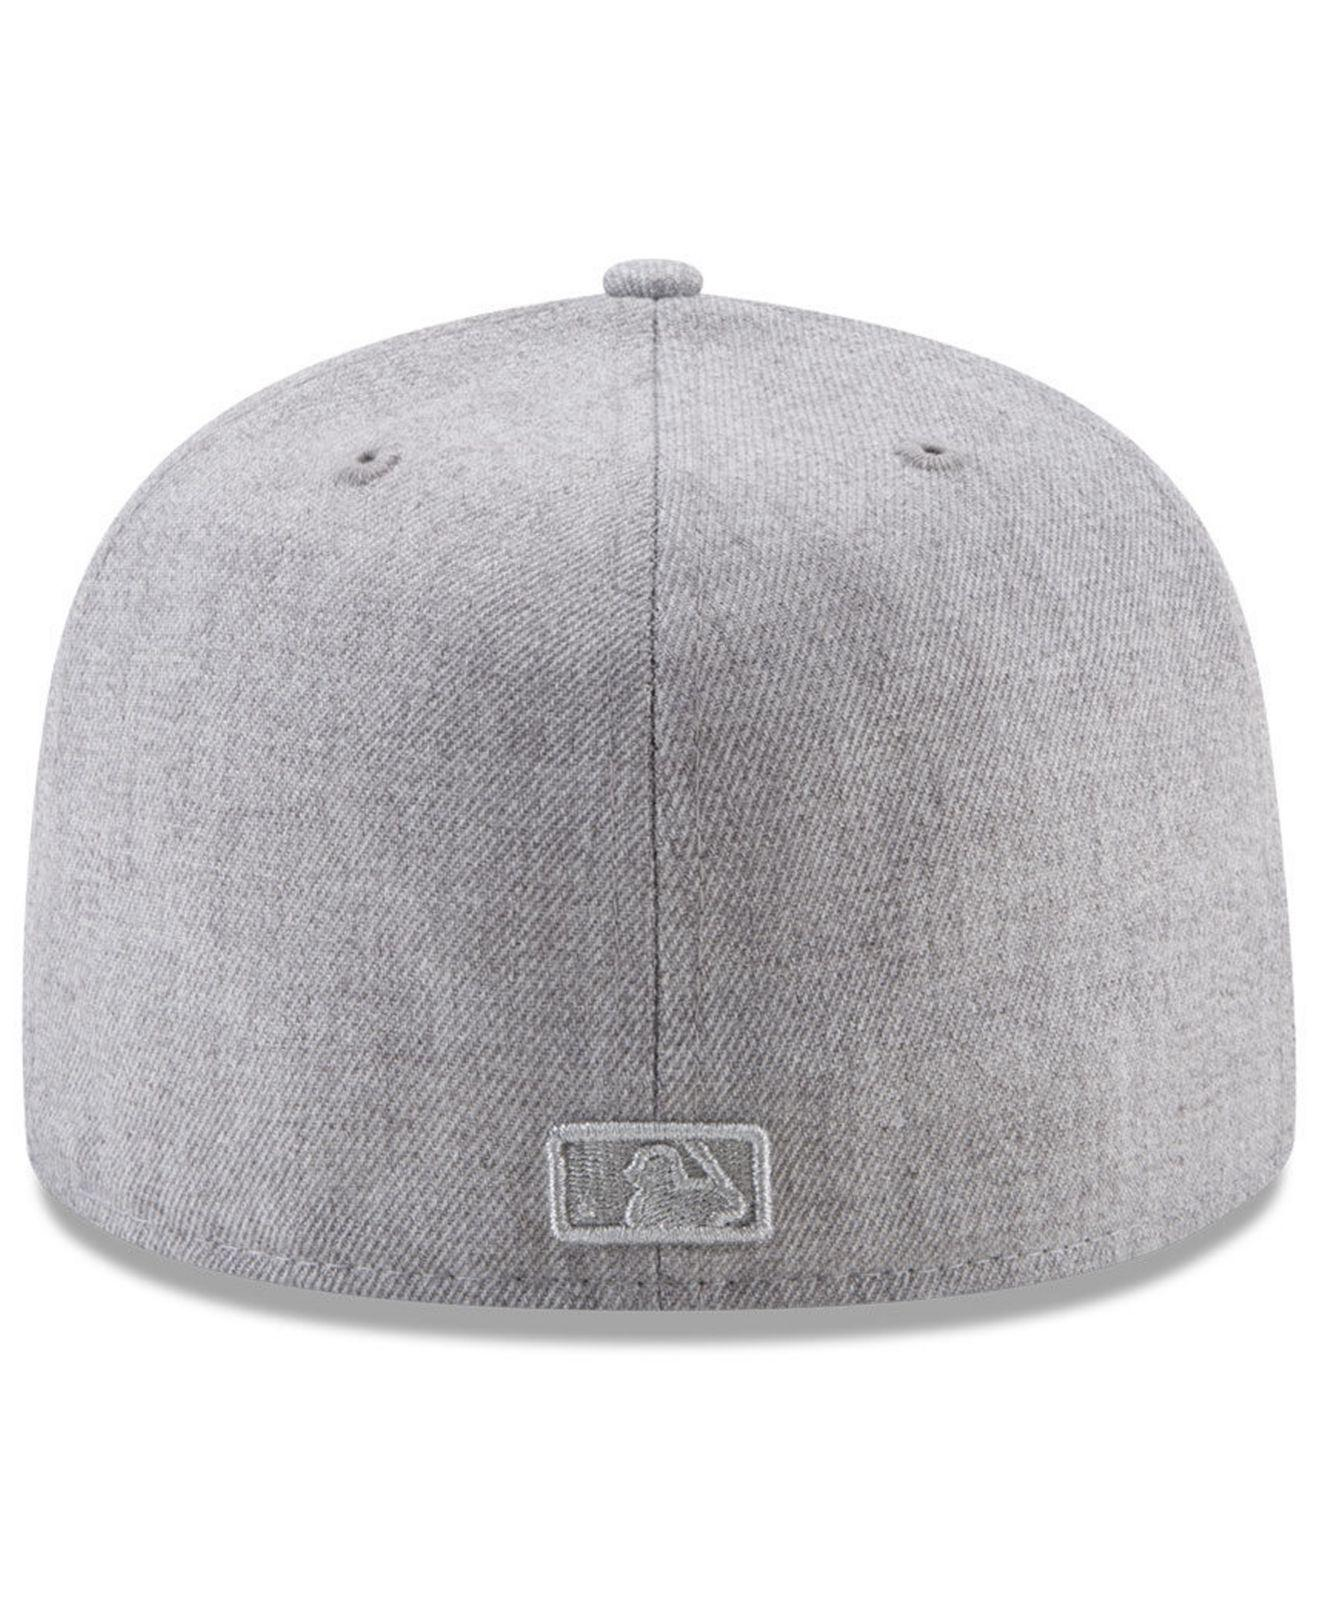 89727f9e6ea get lyst ktz chicago white sox pure silver 59fifty fitted cap in gray e962b  91a7c